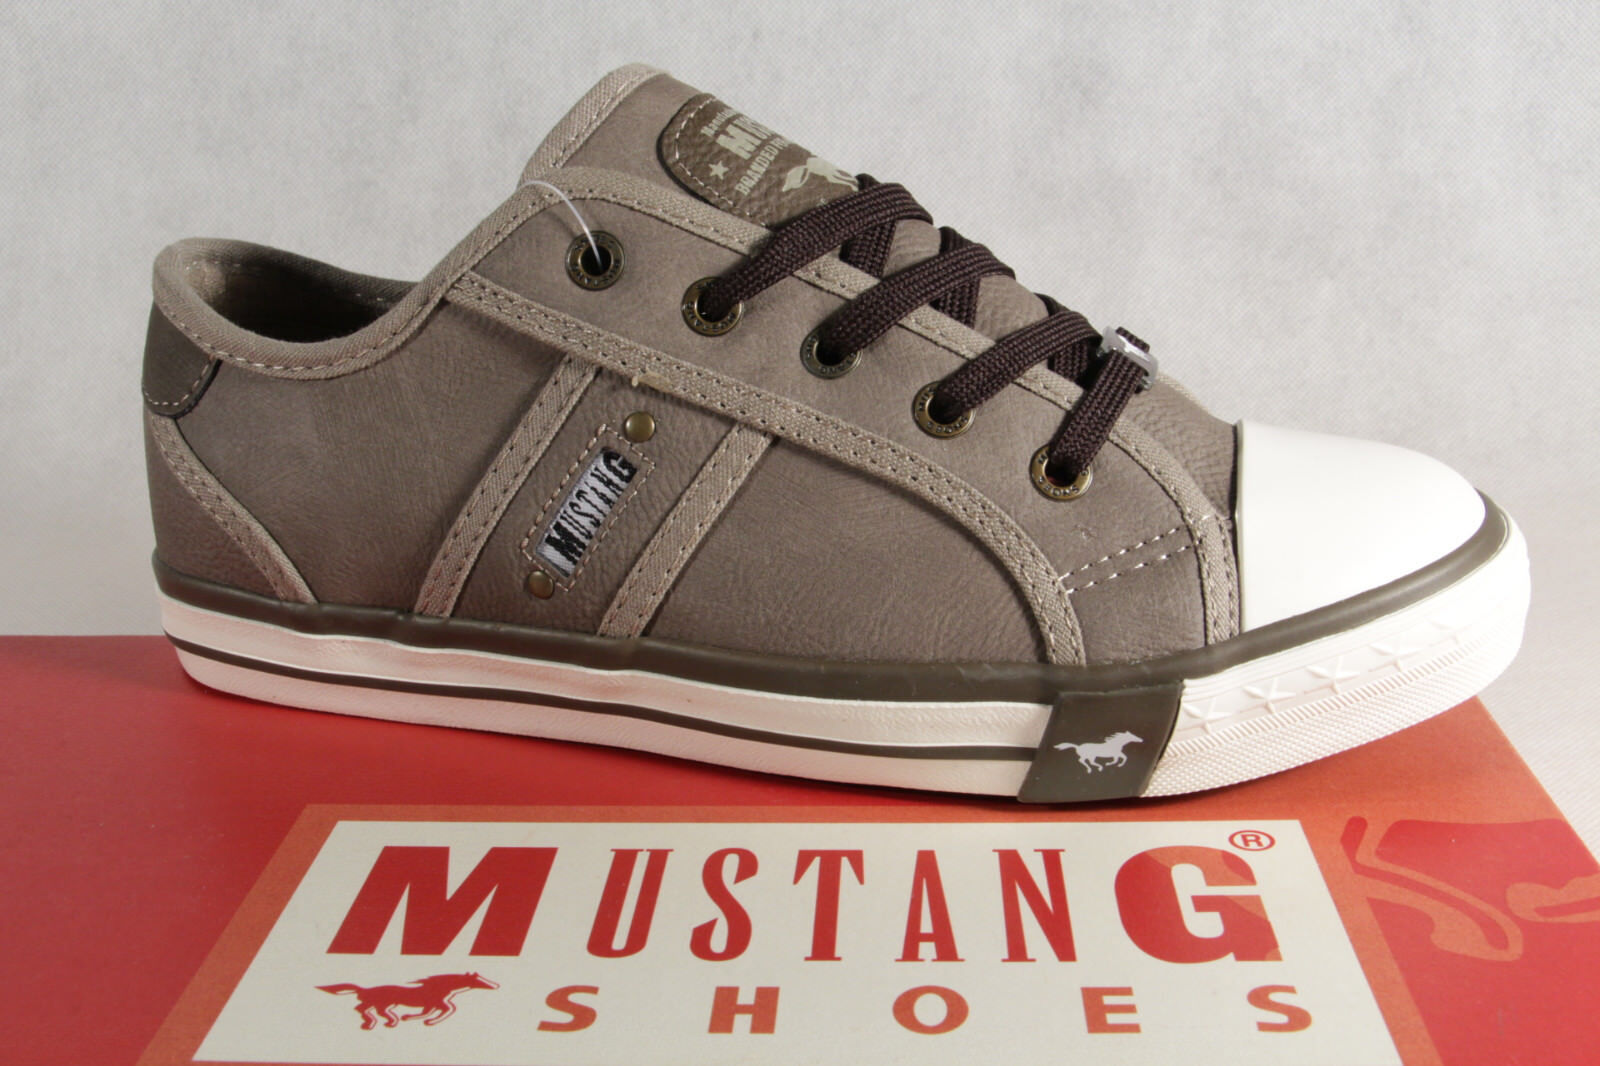 Mustang Lace up Lace up Trainers Low shoes Grey Earth 1209 New